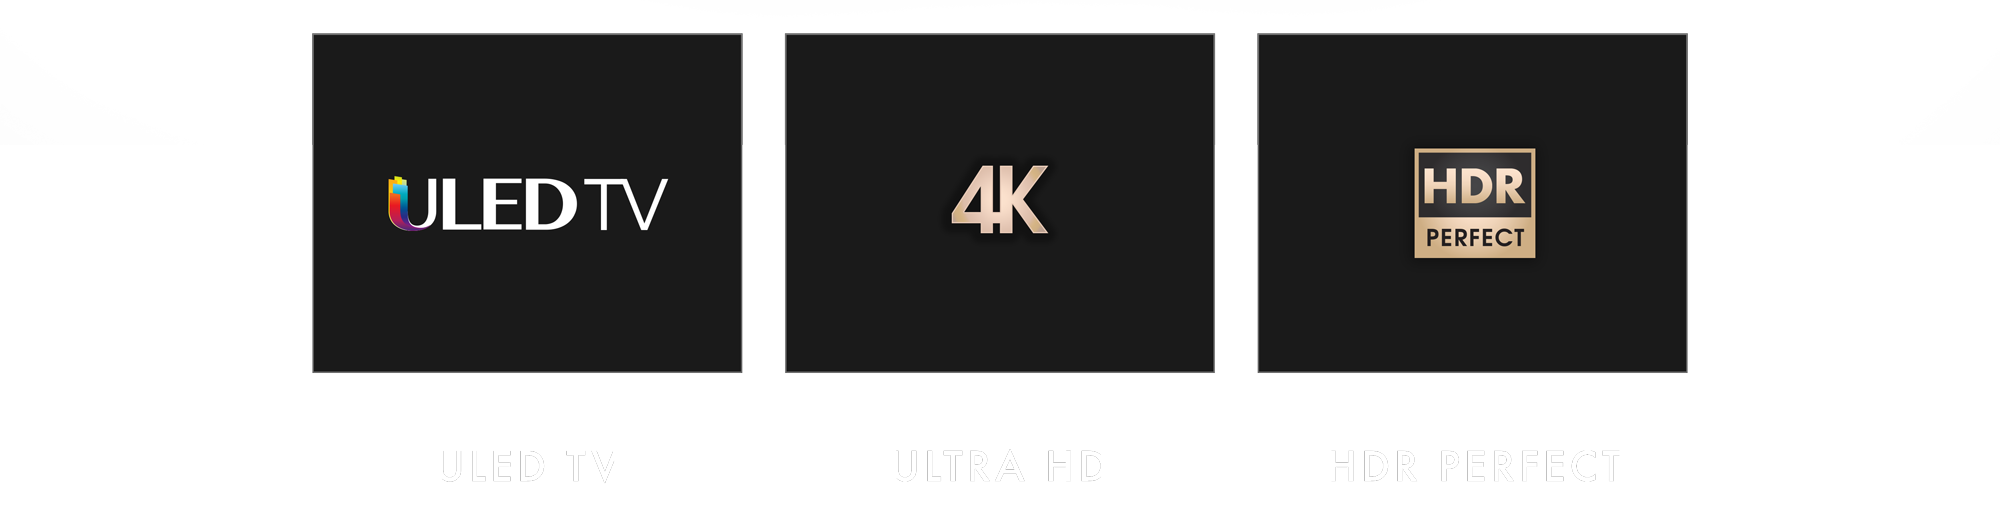 Hisense 4k Hdr Uled Tvs Official Sponsor Of The 2018 Fifa World Cup